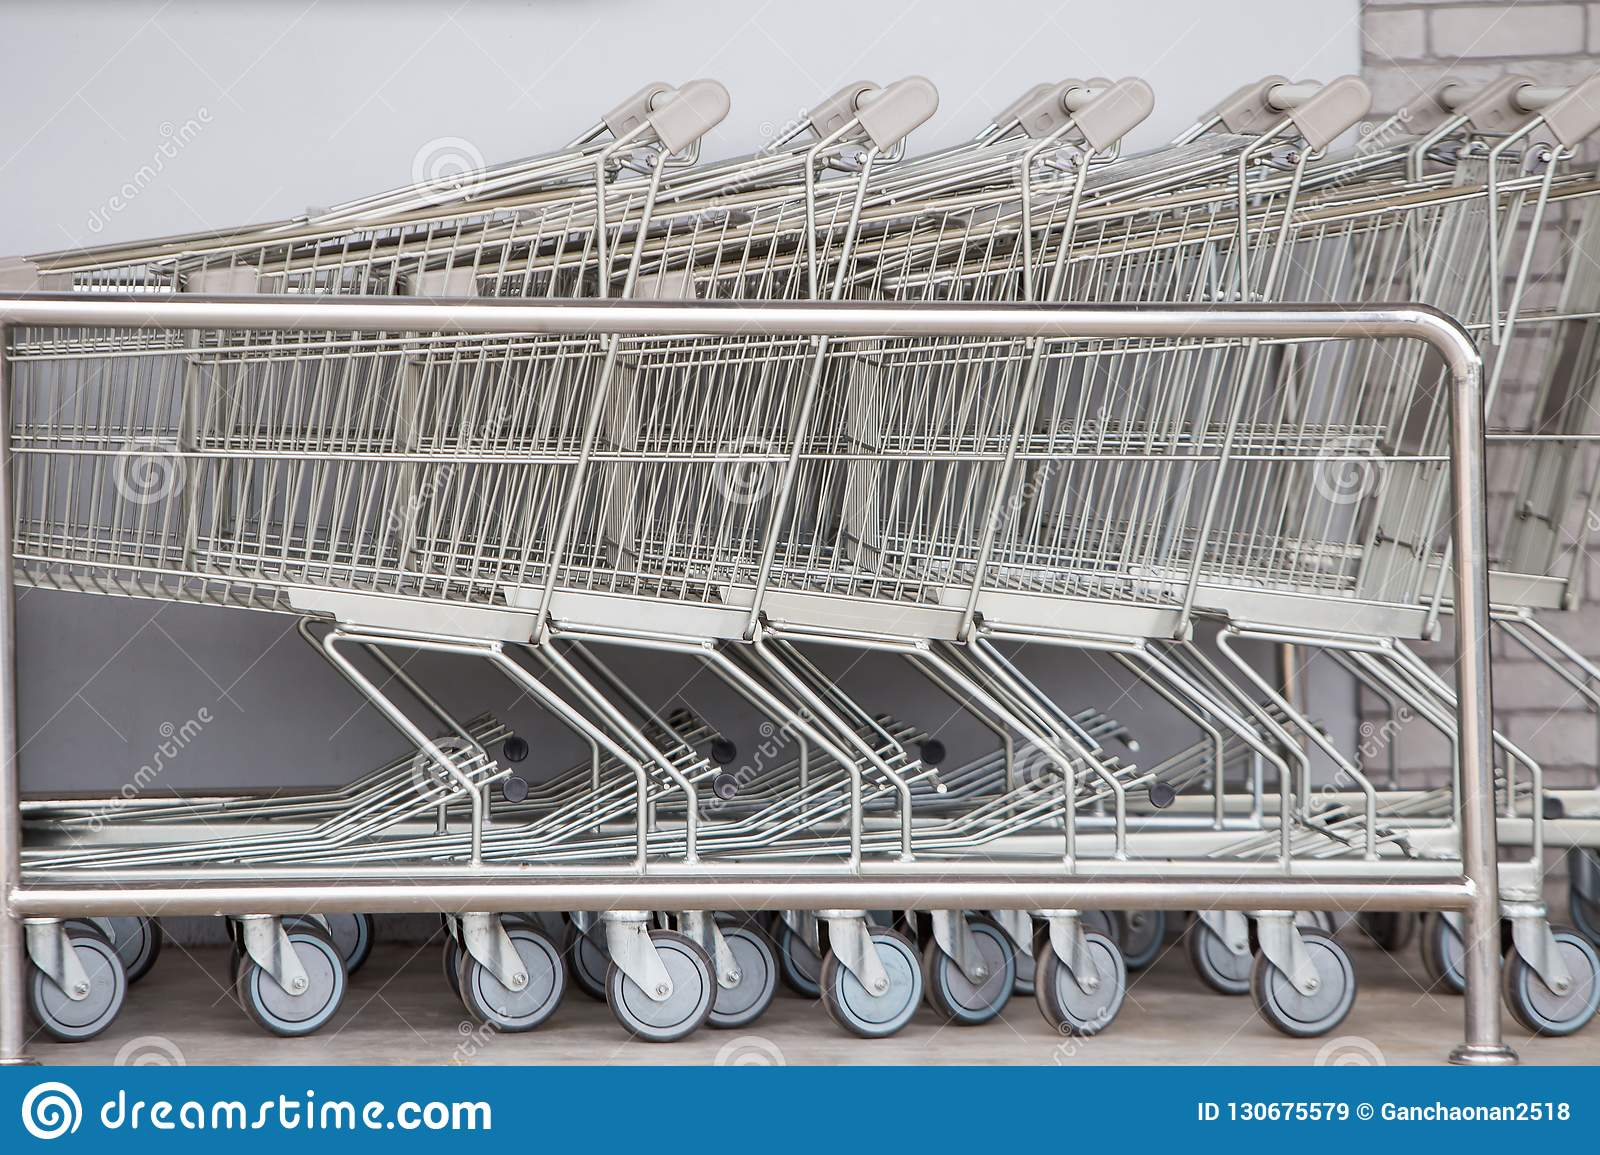 Shopping carts, Shopping cart trolley in row retail department store,